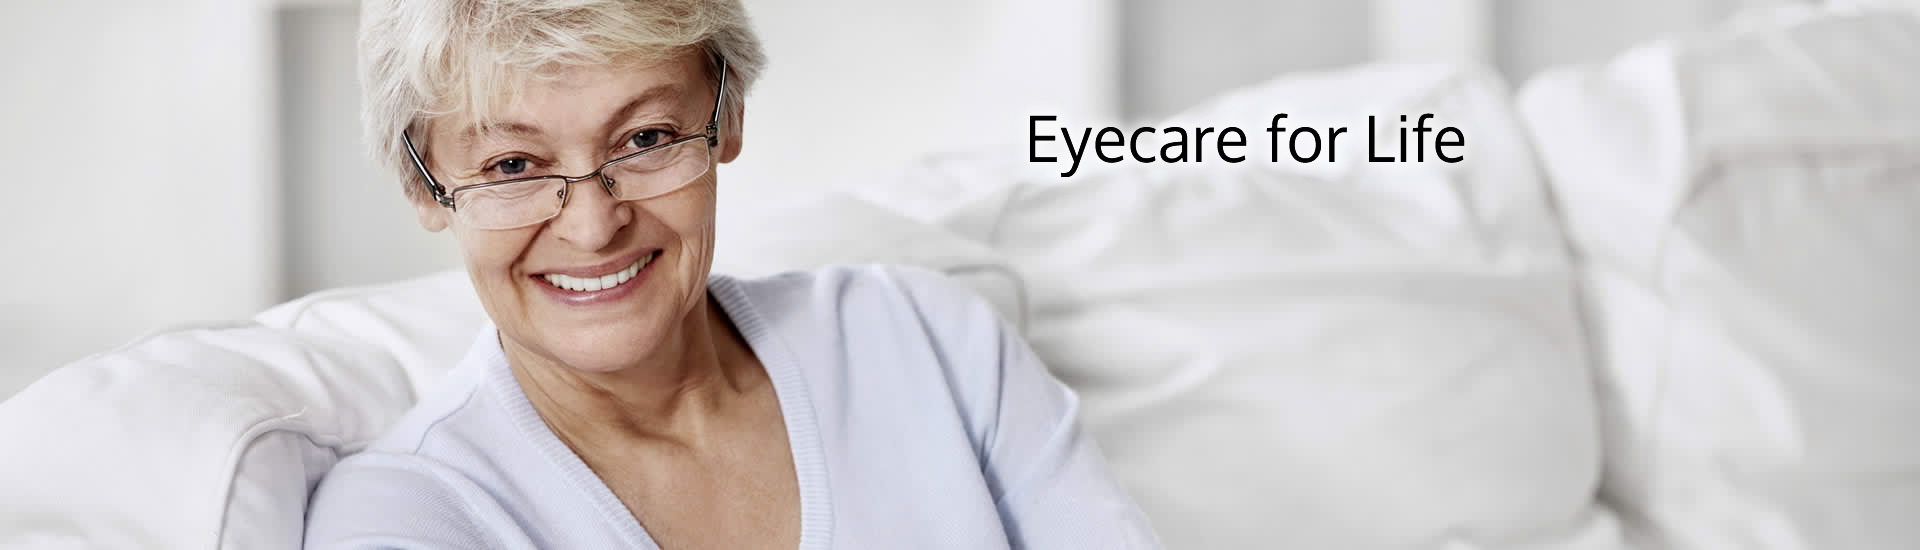 Eyecare for Life